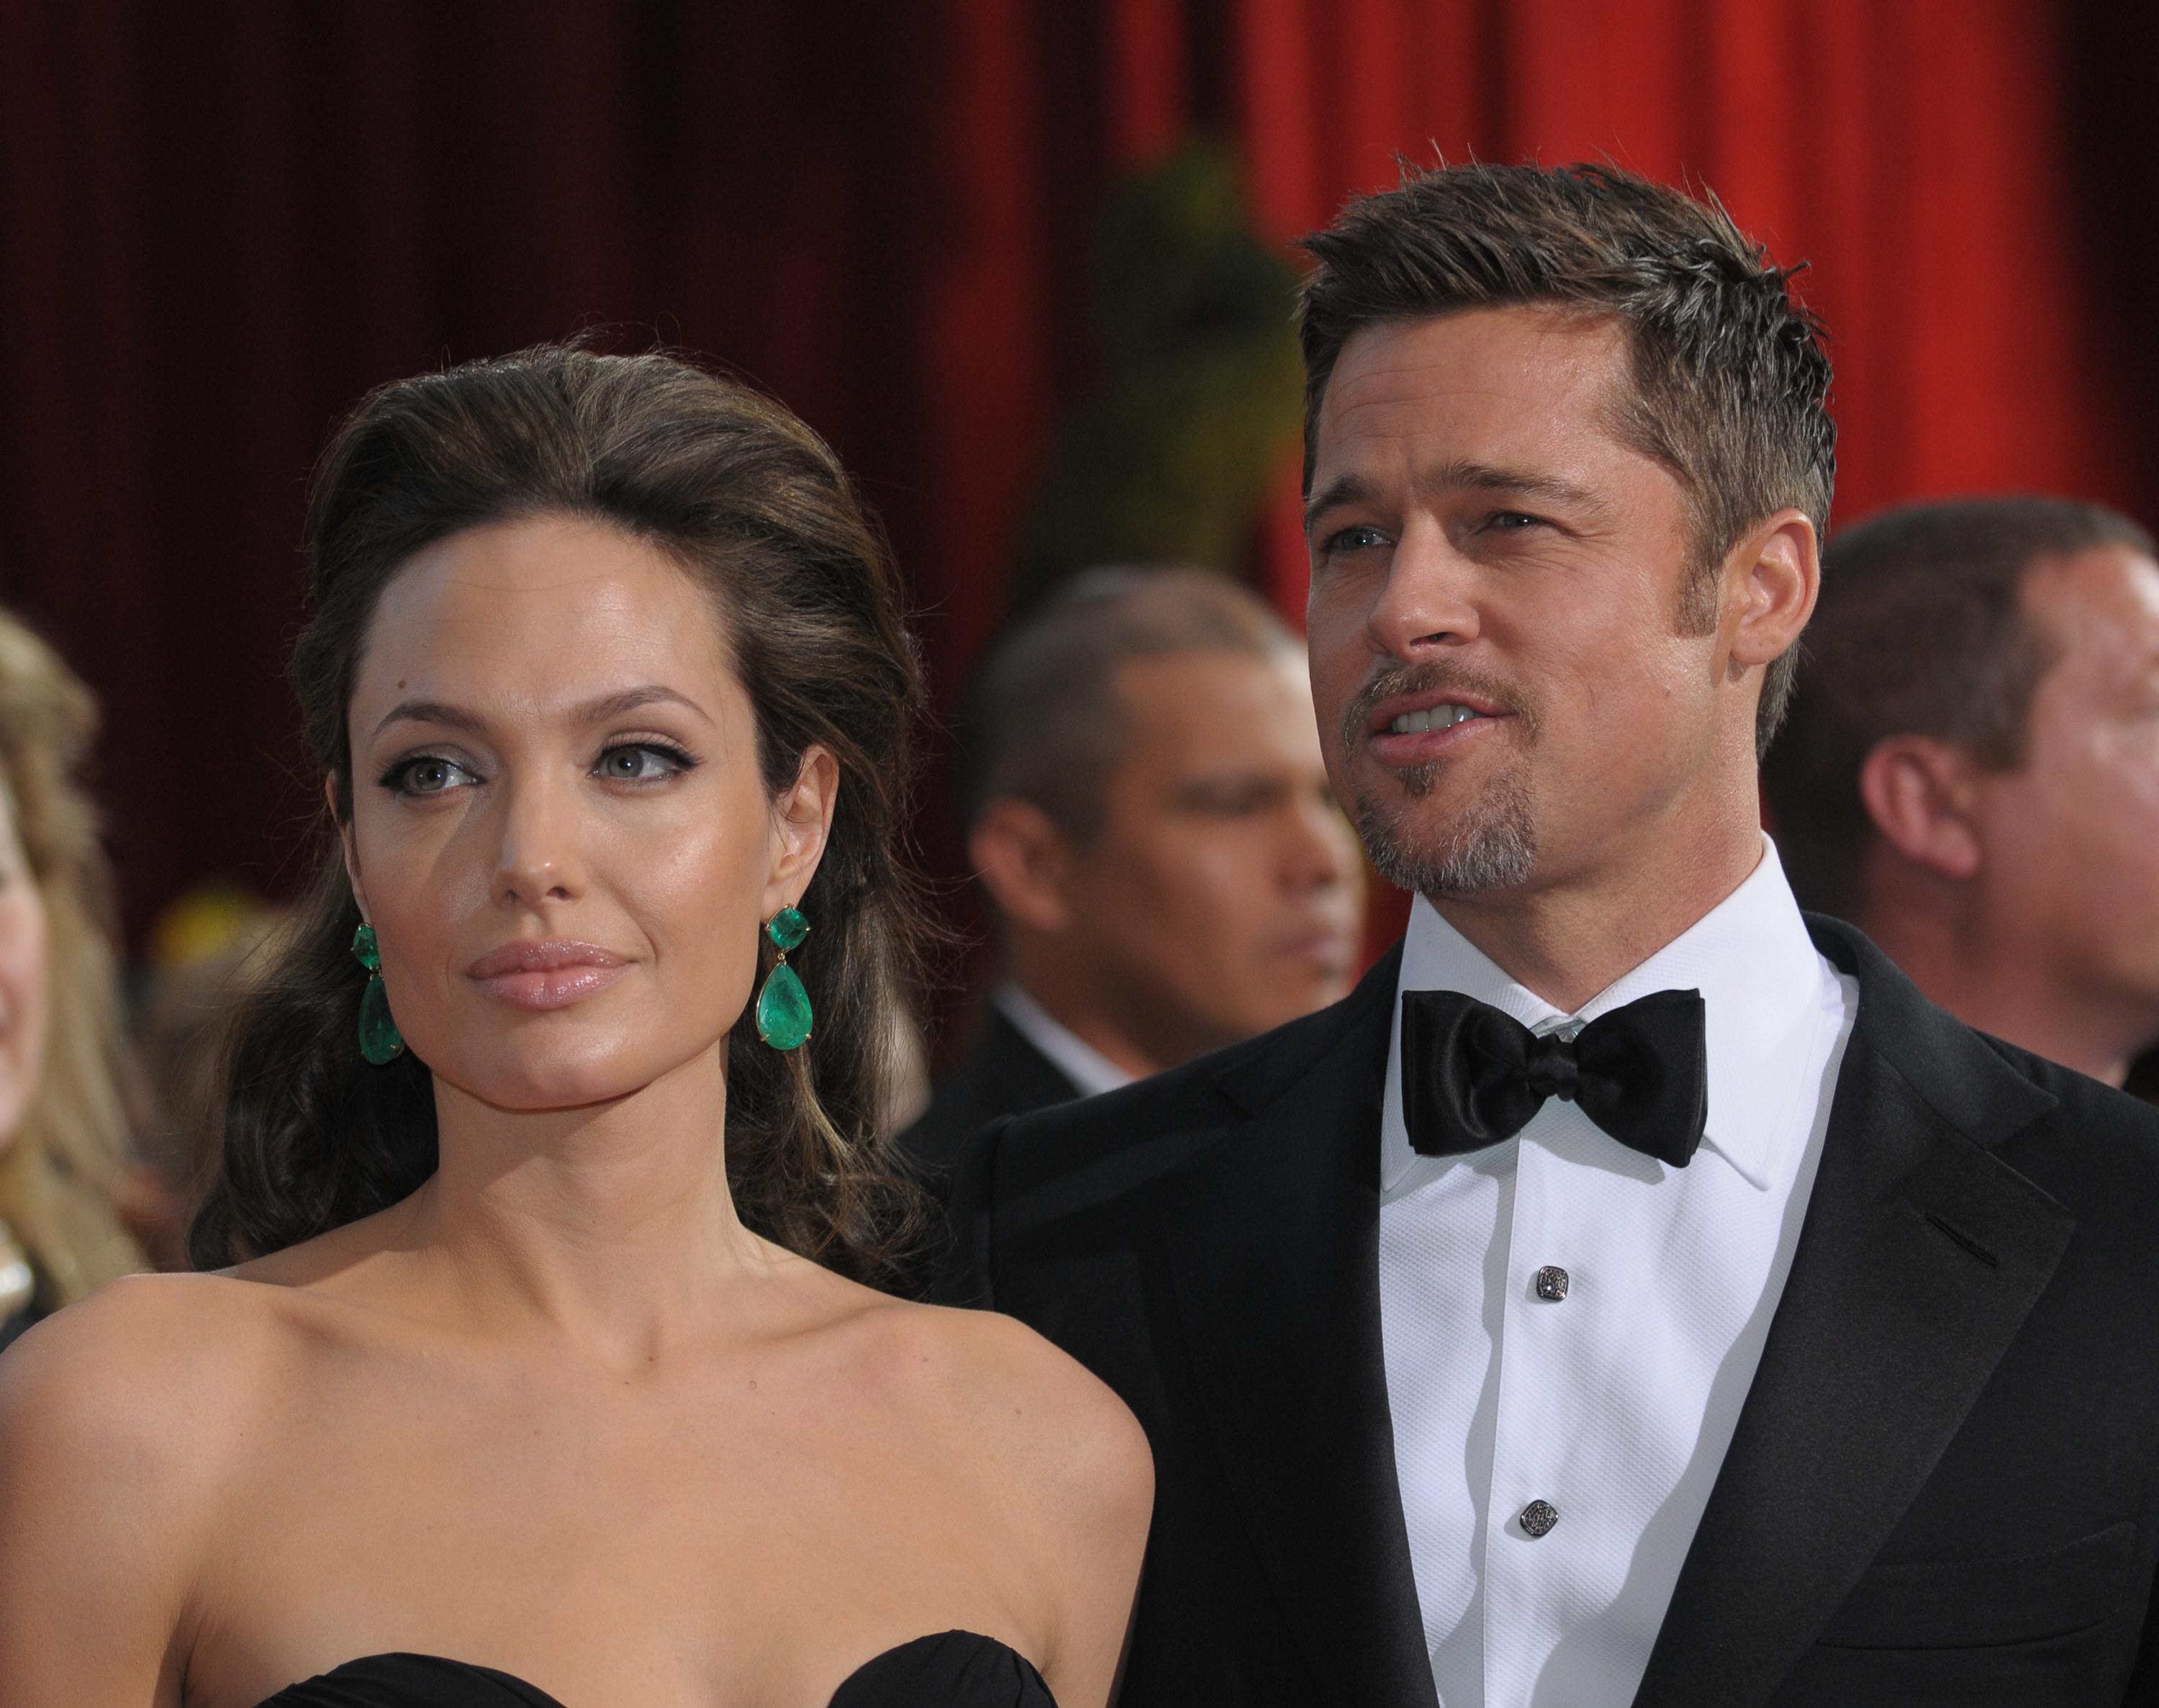 Angelina in a strapless outfit and Brad in a bow tie